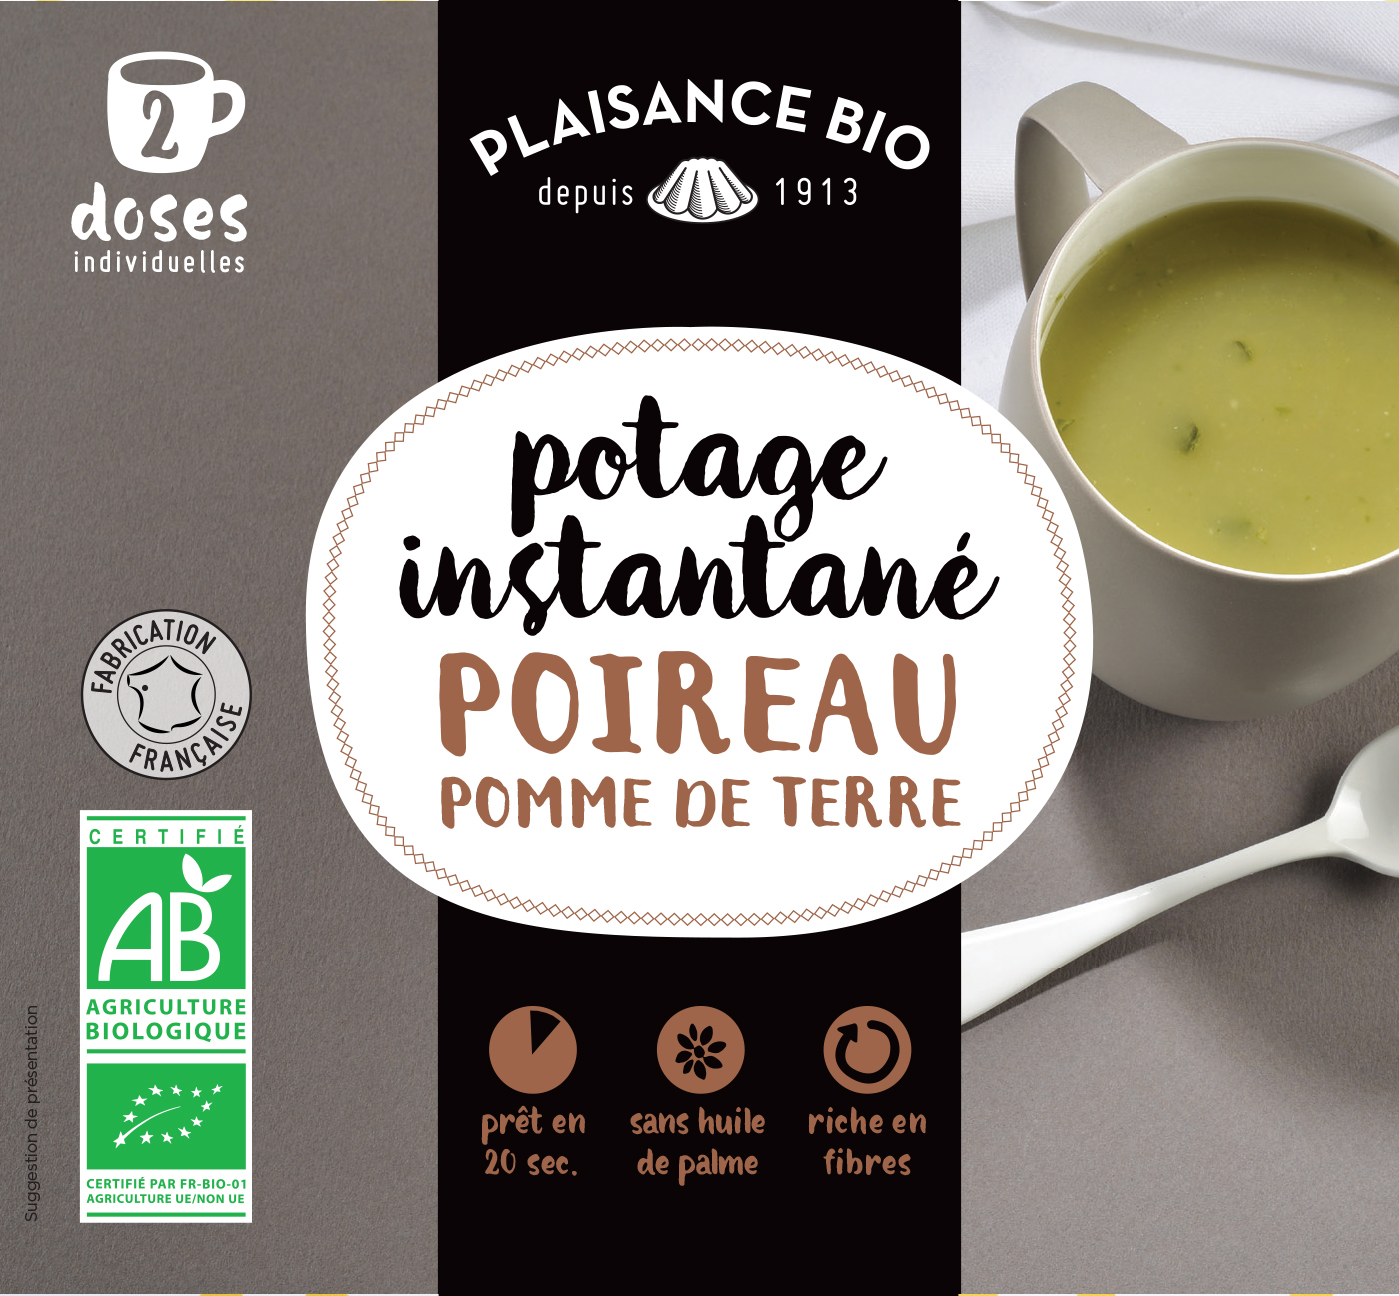 PLAISANCE BIO POTAGE POI PDT